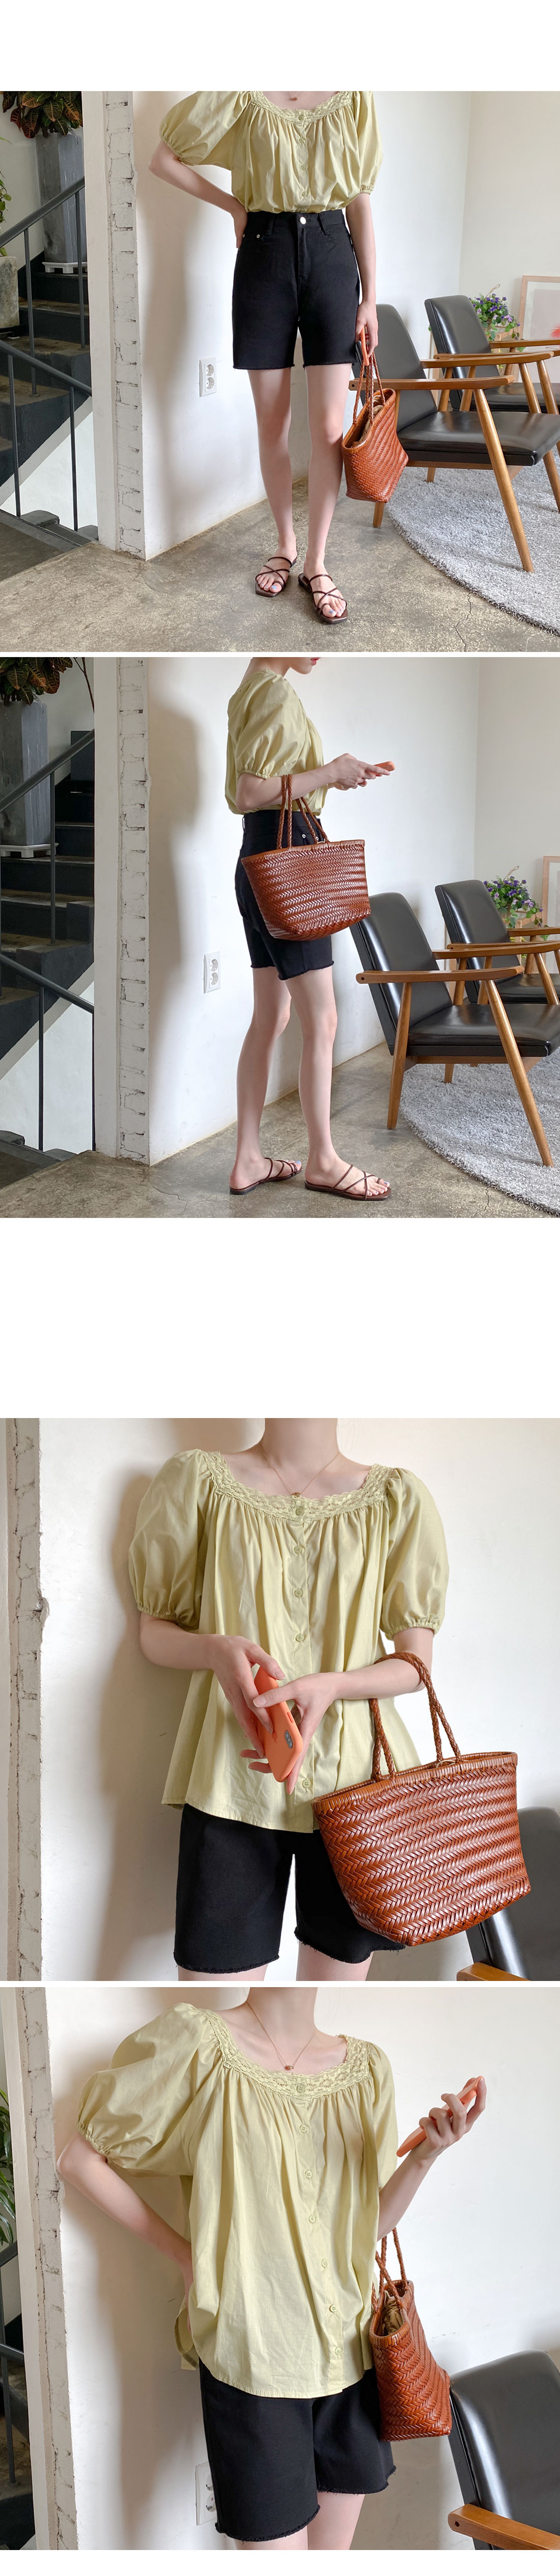 Butterful lace blouse